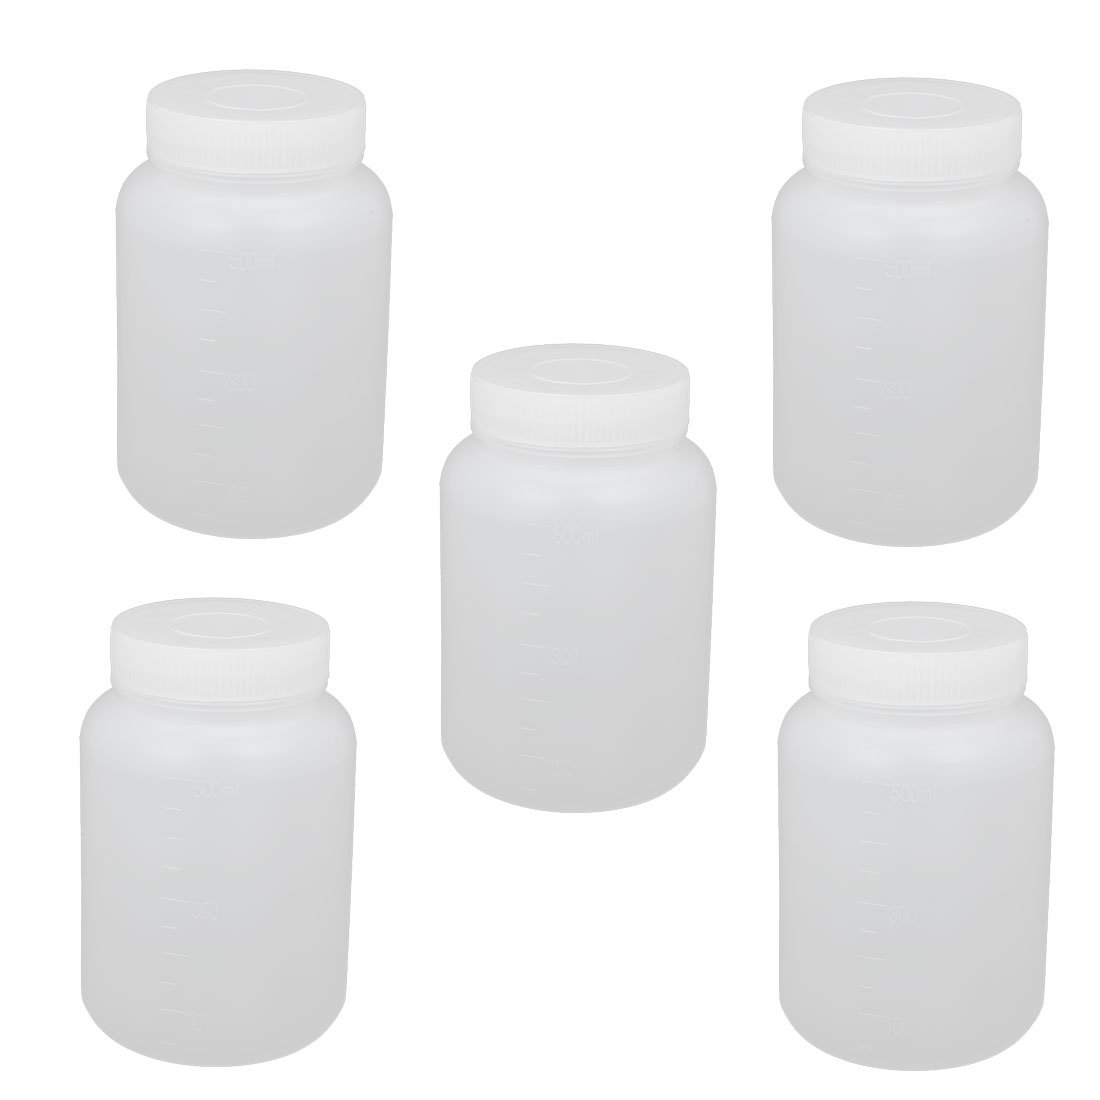 uxcell 5Pcs 500ml Plastic Wide Mouth Cylindrical Laboratory Reagent Bottle Sealling Bottle White